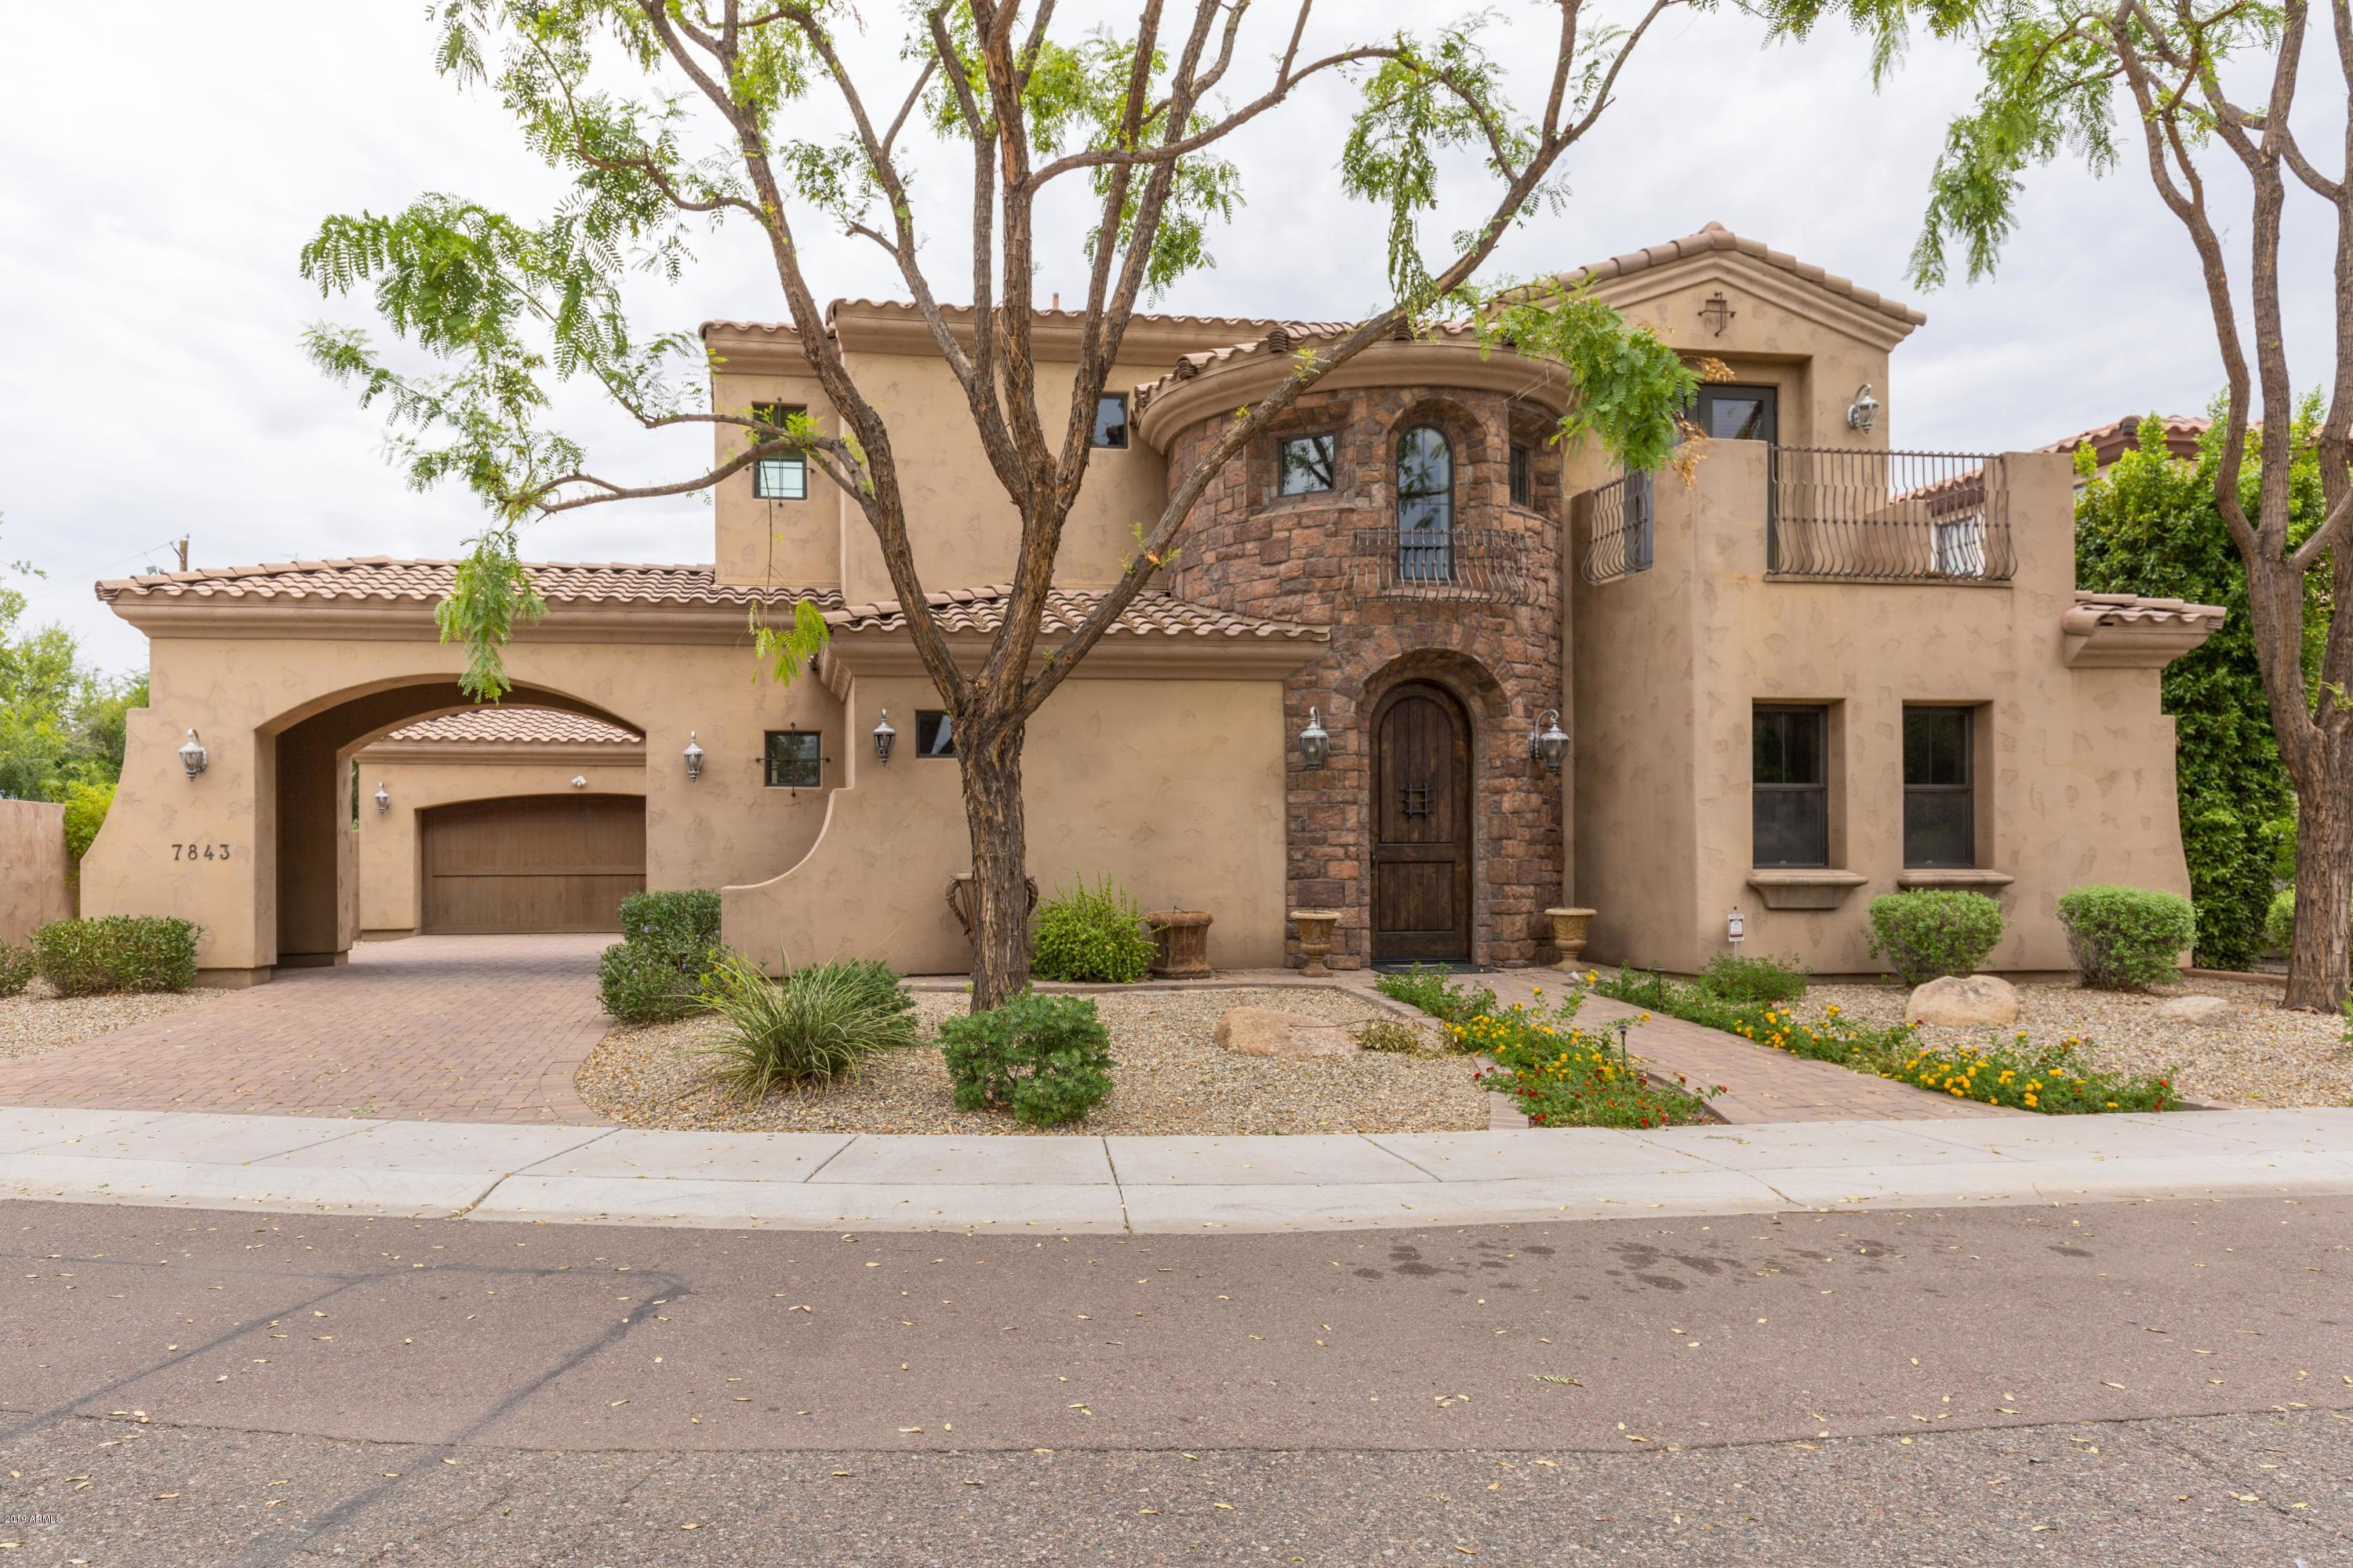 7843 N 3RD Way, Phoenix North, Arizona